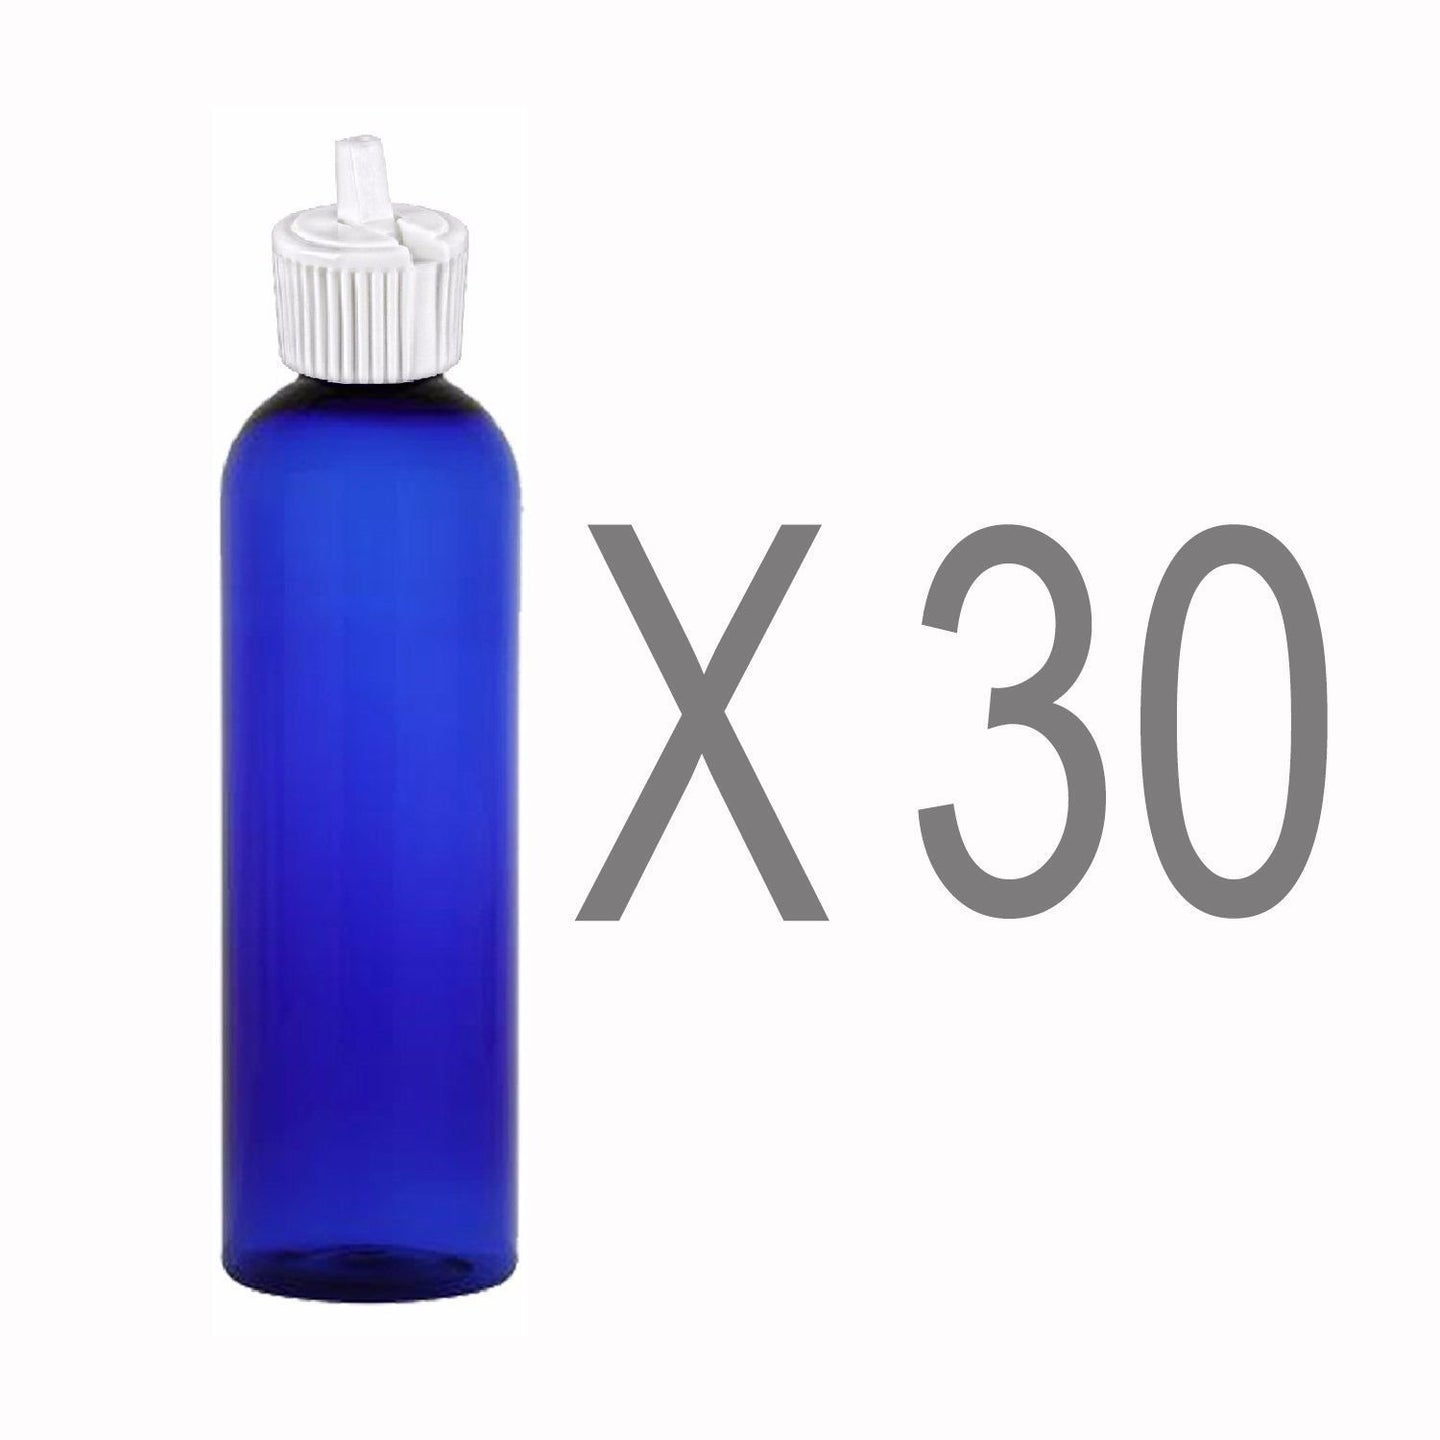 MoYo Natural Labs 4 oz Squirt Bottles, Squeezable Empty Travel Containers, BPA Free PET Plastic for Essential Oils and Liquids, Toiletry/Cosmetic Bottles (Neck 20-410) (Pack of 30, Blue)